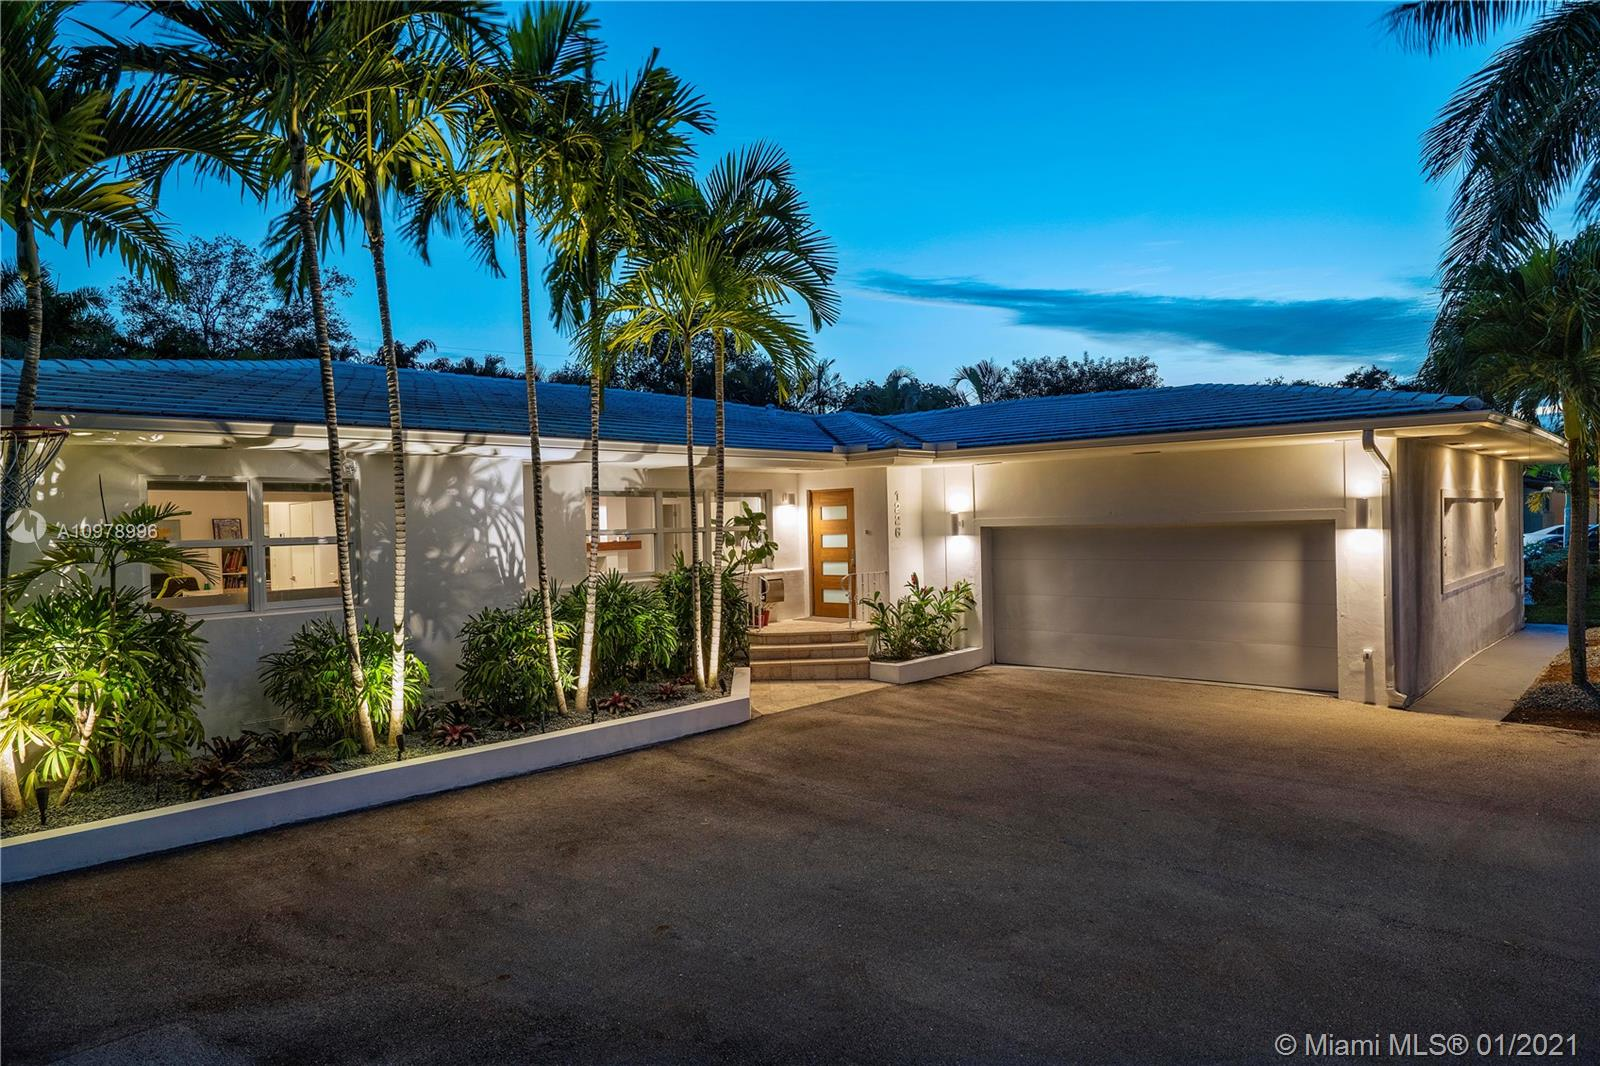 1226 93rd St, Miami Shores, Florida 33138